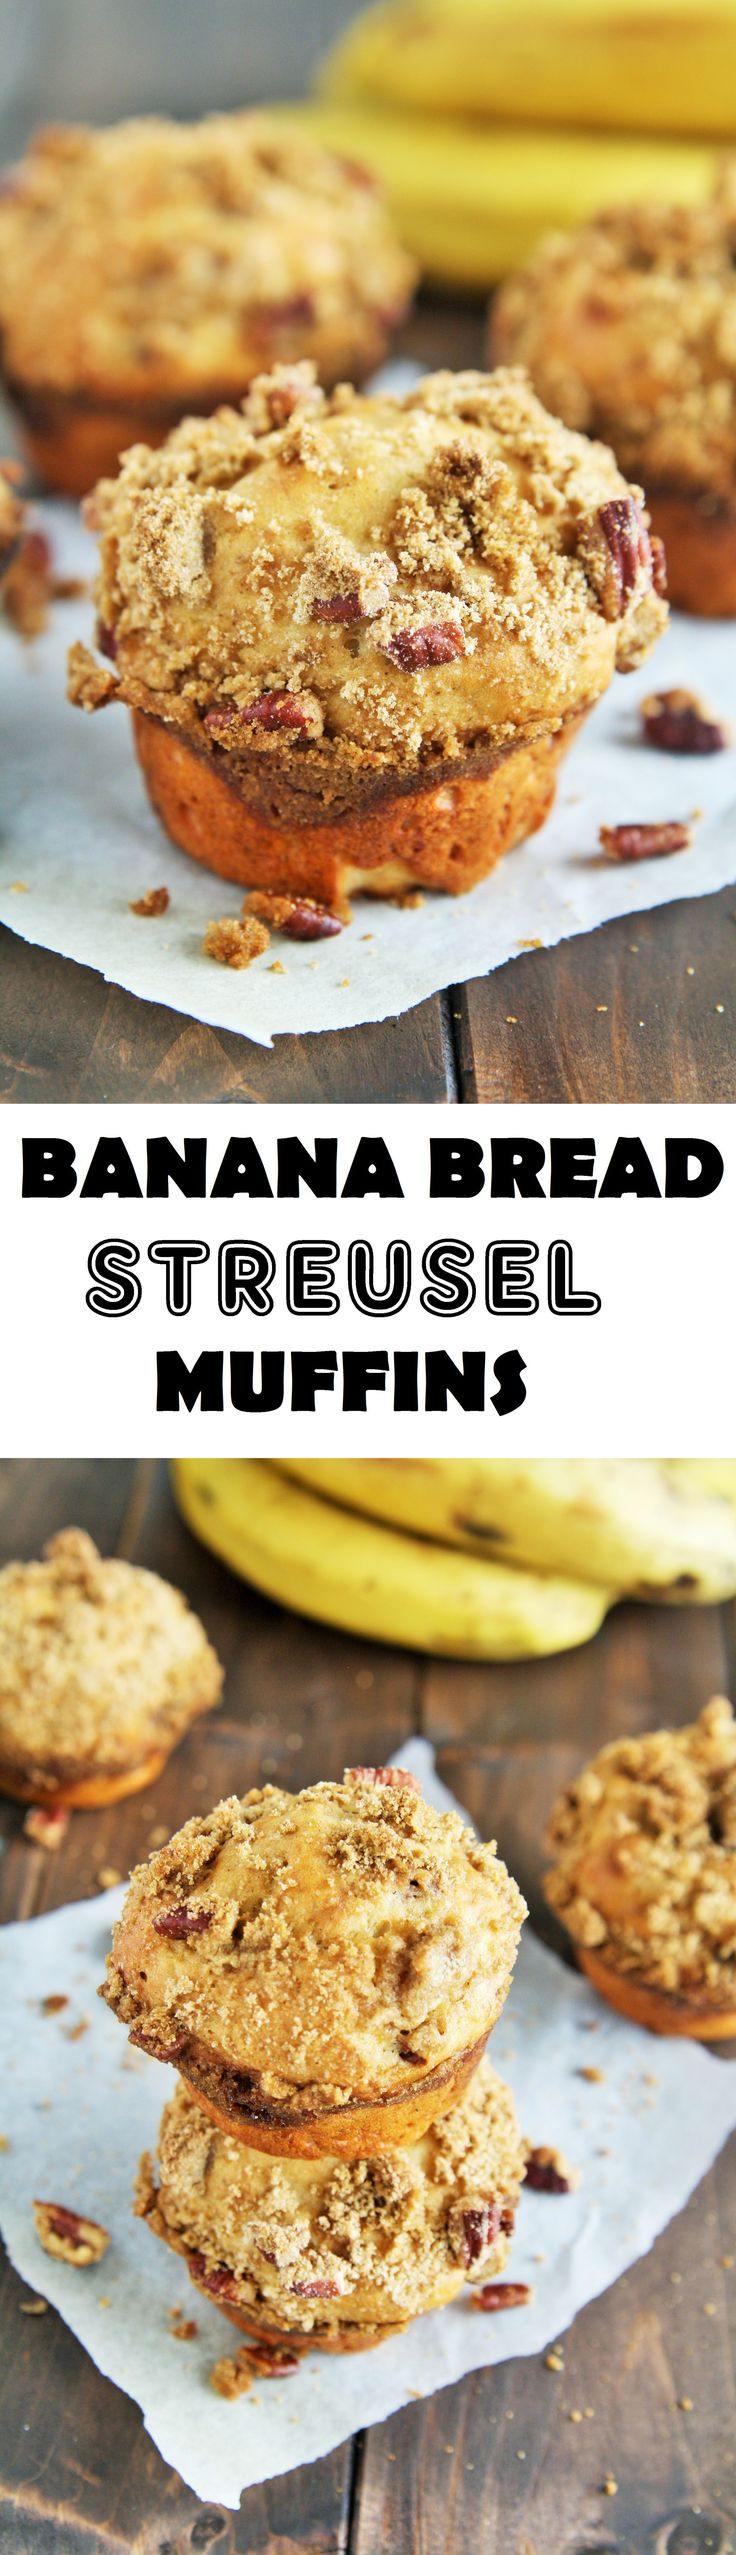 This shop has been compensated by Collective Bias, Inc. and its advertiser. All opinions are mine alone. #SplashofDelight #CollectiveBias These muffins are a combination of homemade banana bread an…